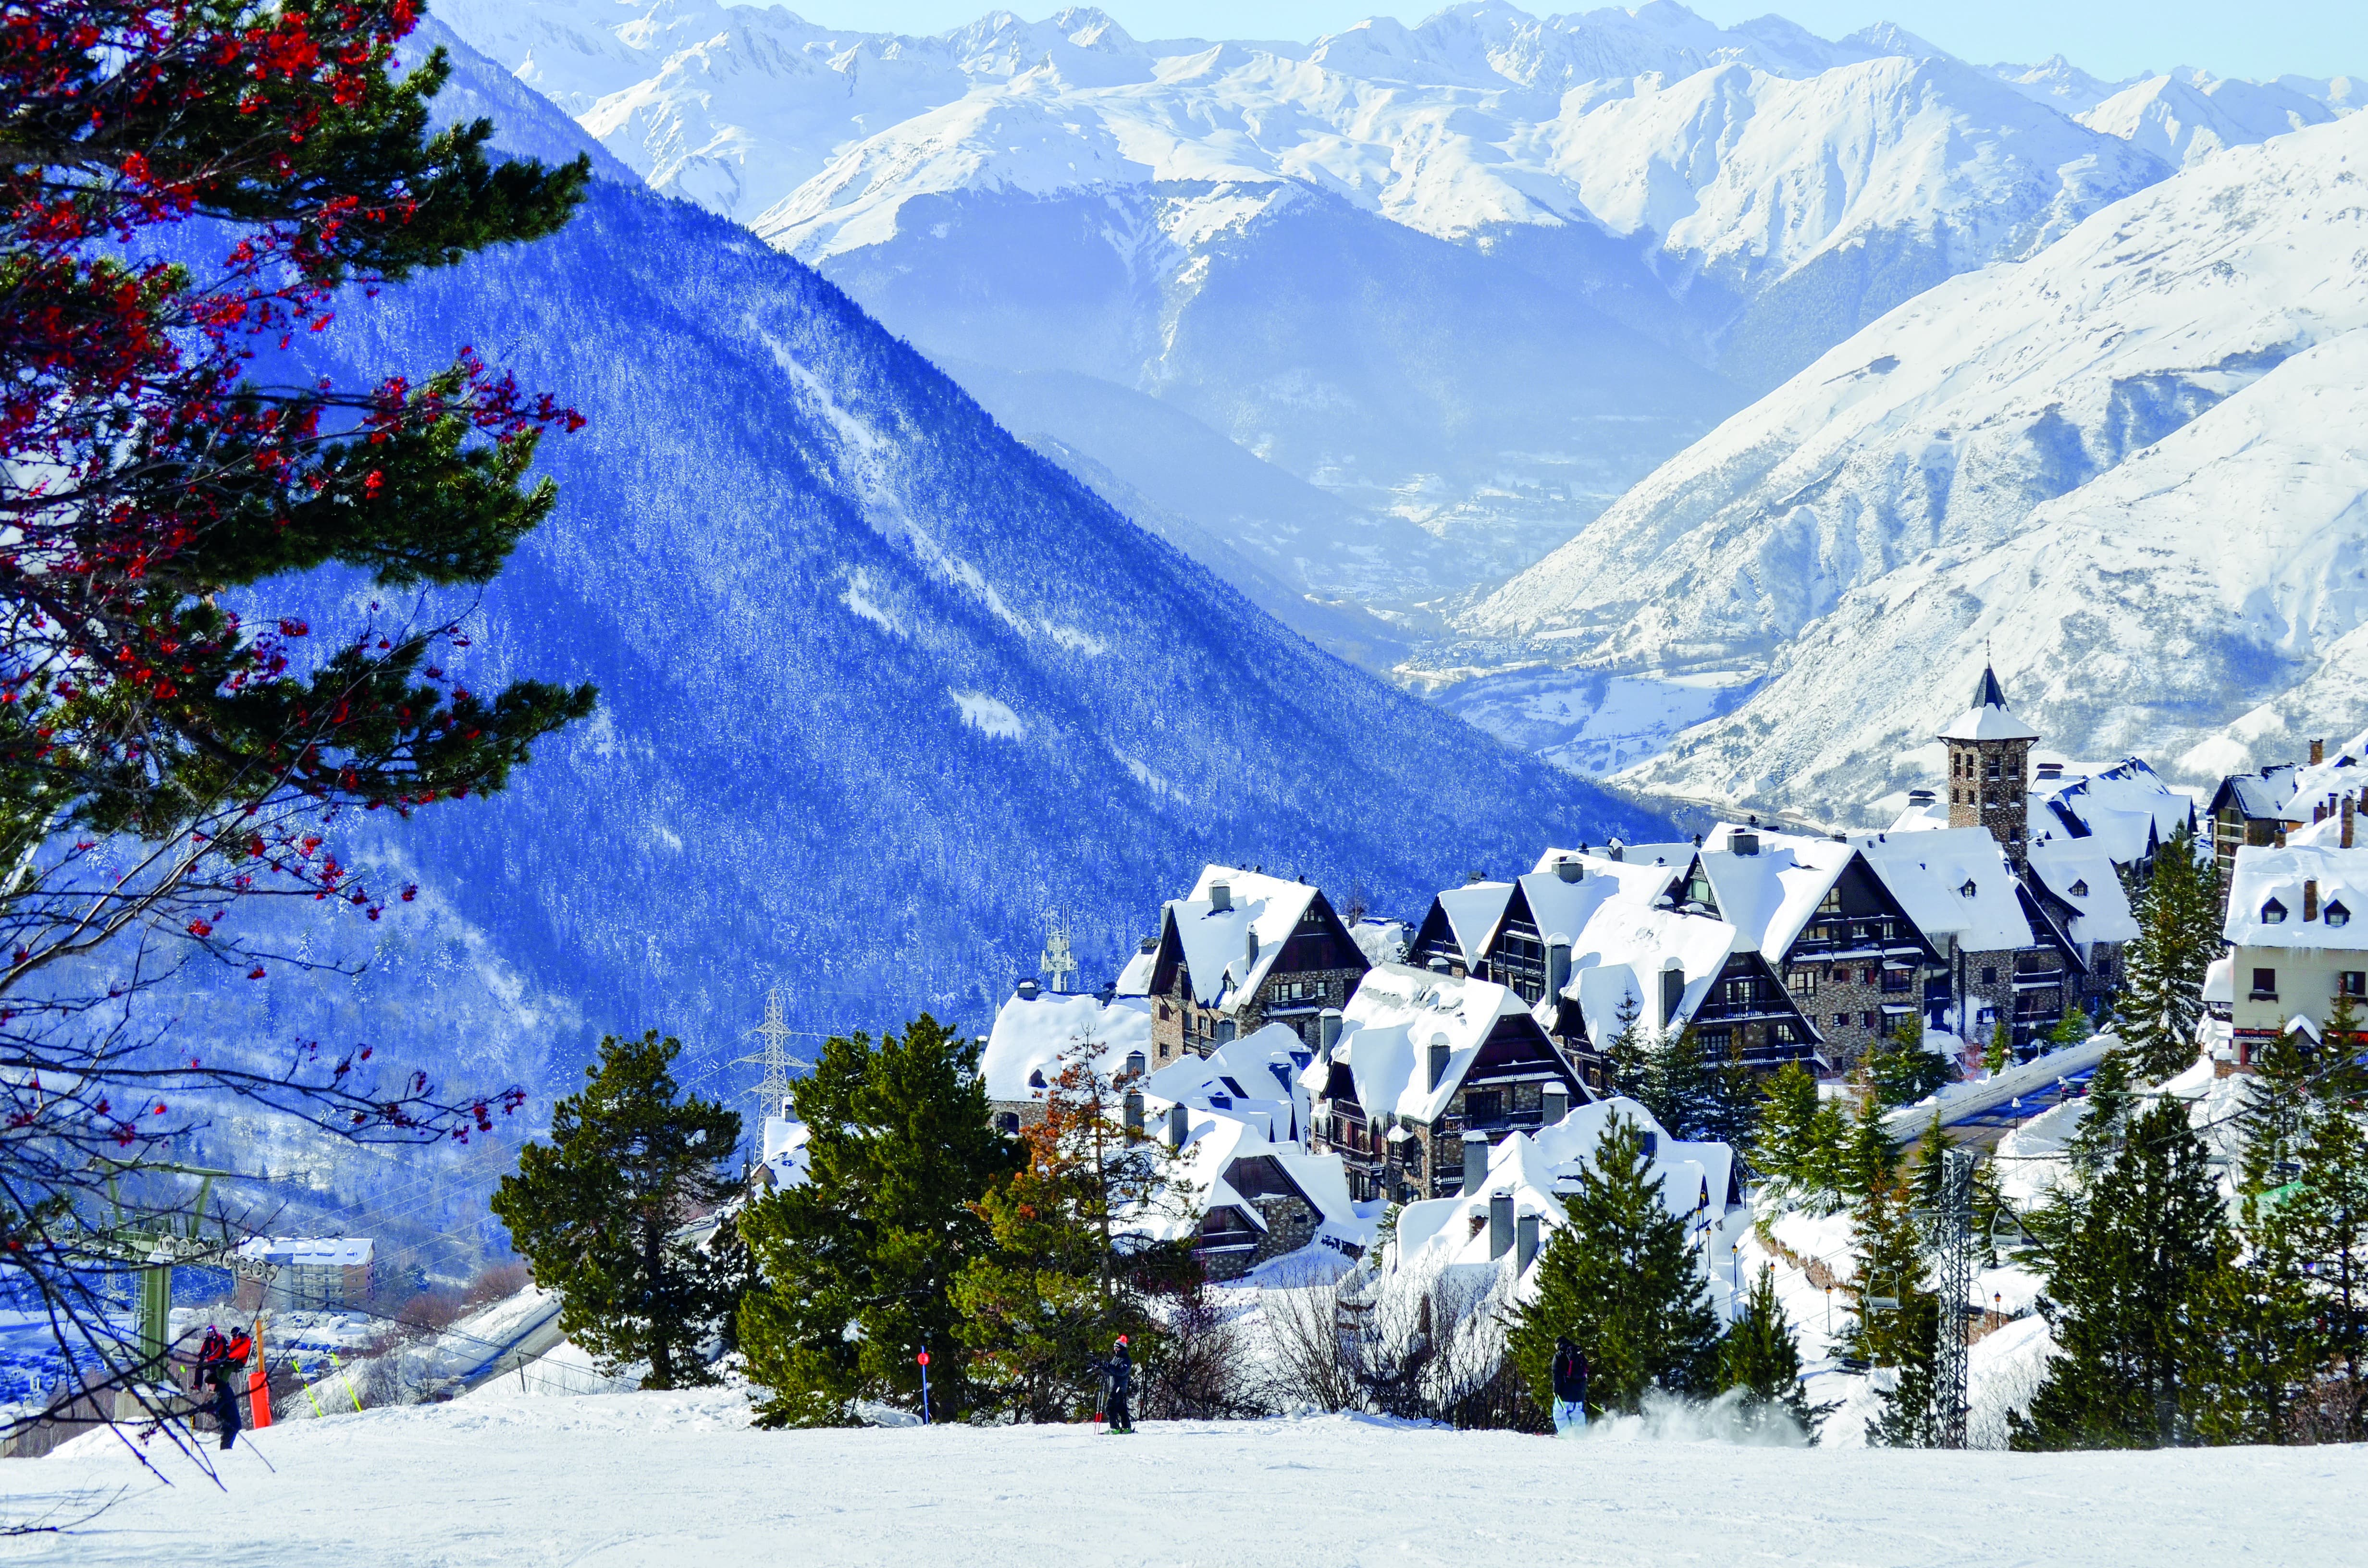 Baqueira/Beret Resort Guide